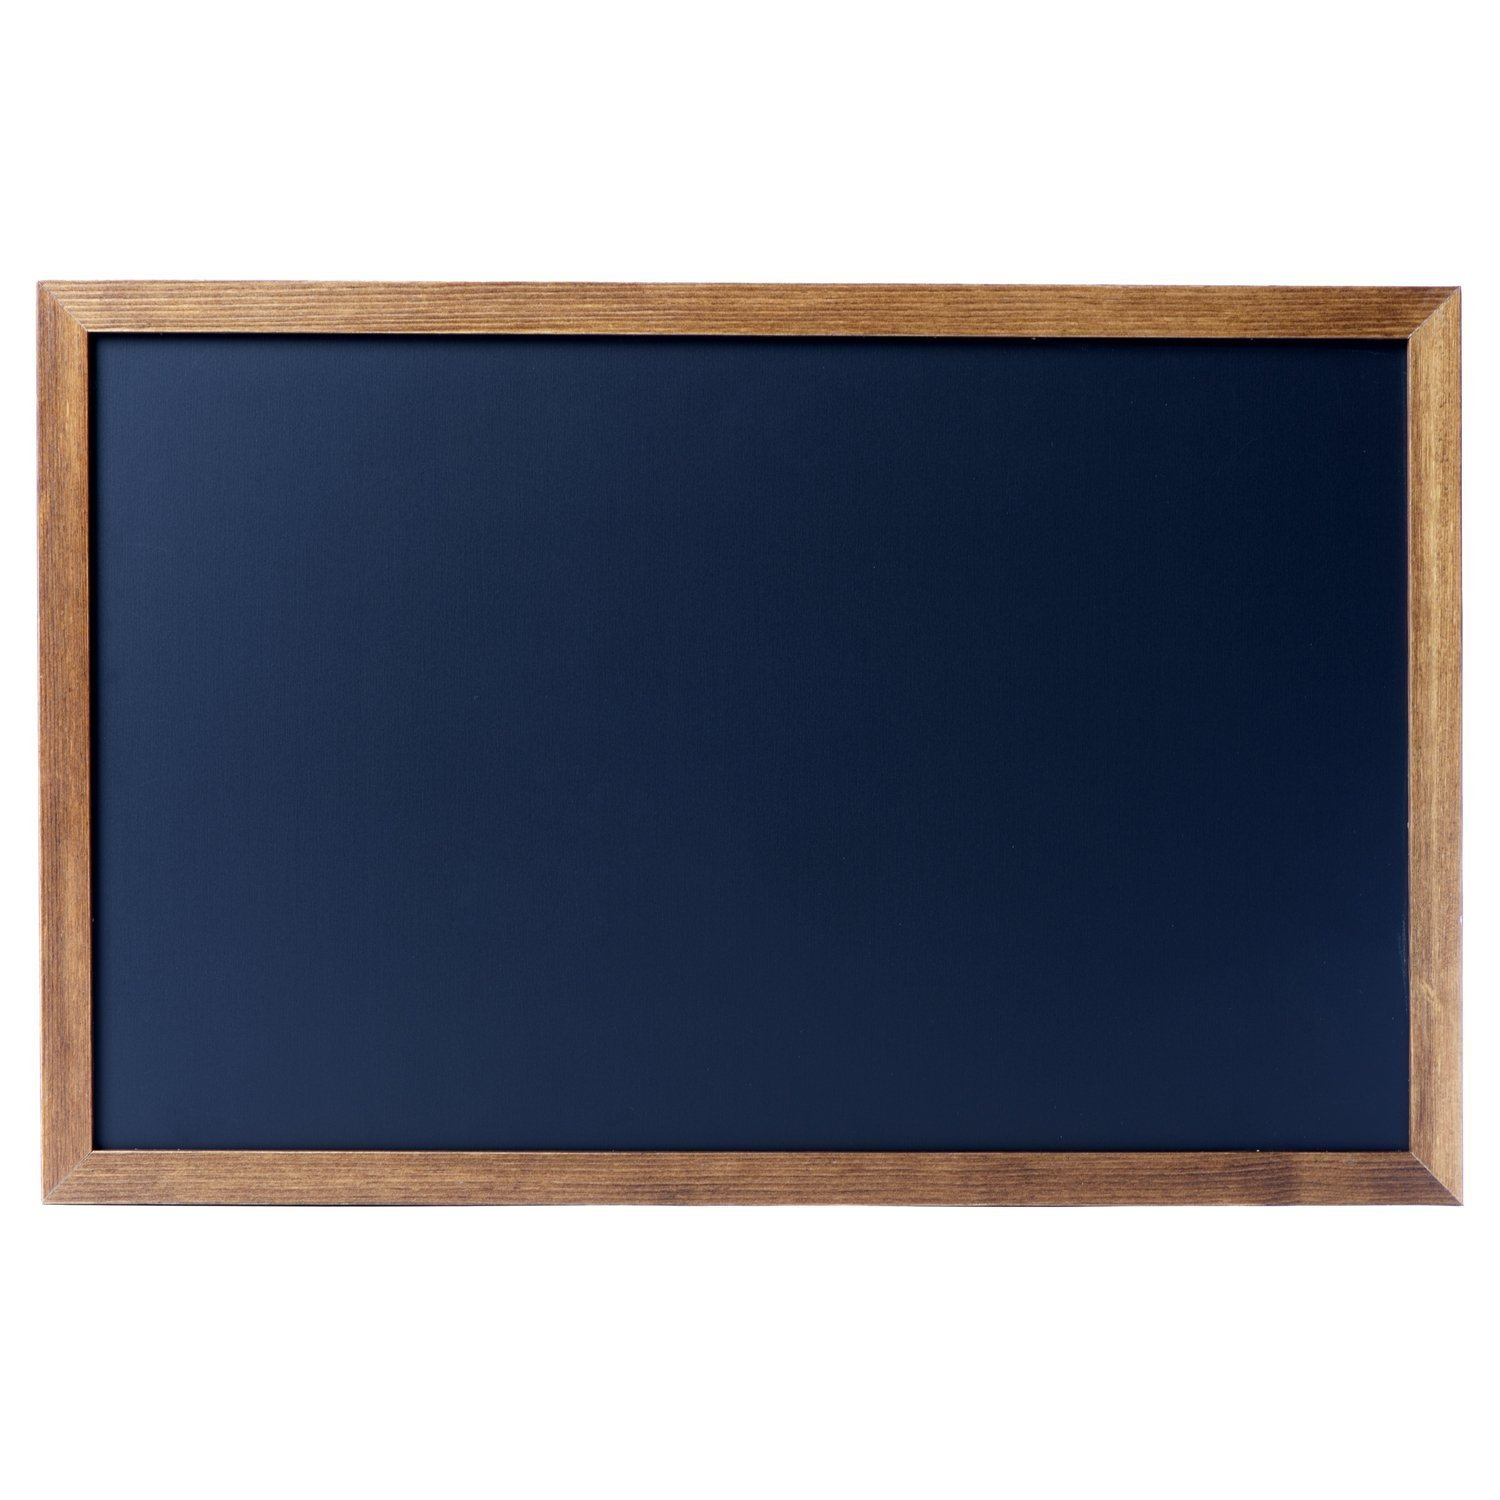 Cedar Markers 27''x20'' Framed Chalkboard Sign. 100% Non-Porous Erasable Blackboard and Whiteboard. Chalk Board for Chalk Markers. Magnet Board Decorative Bulletin Board for Every Event (27x20)